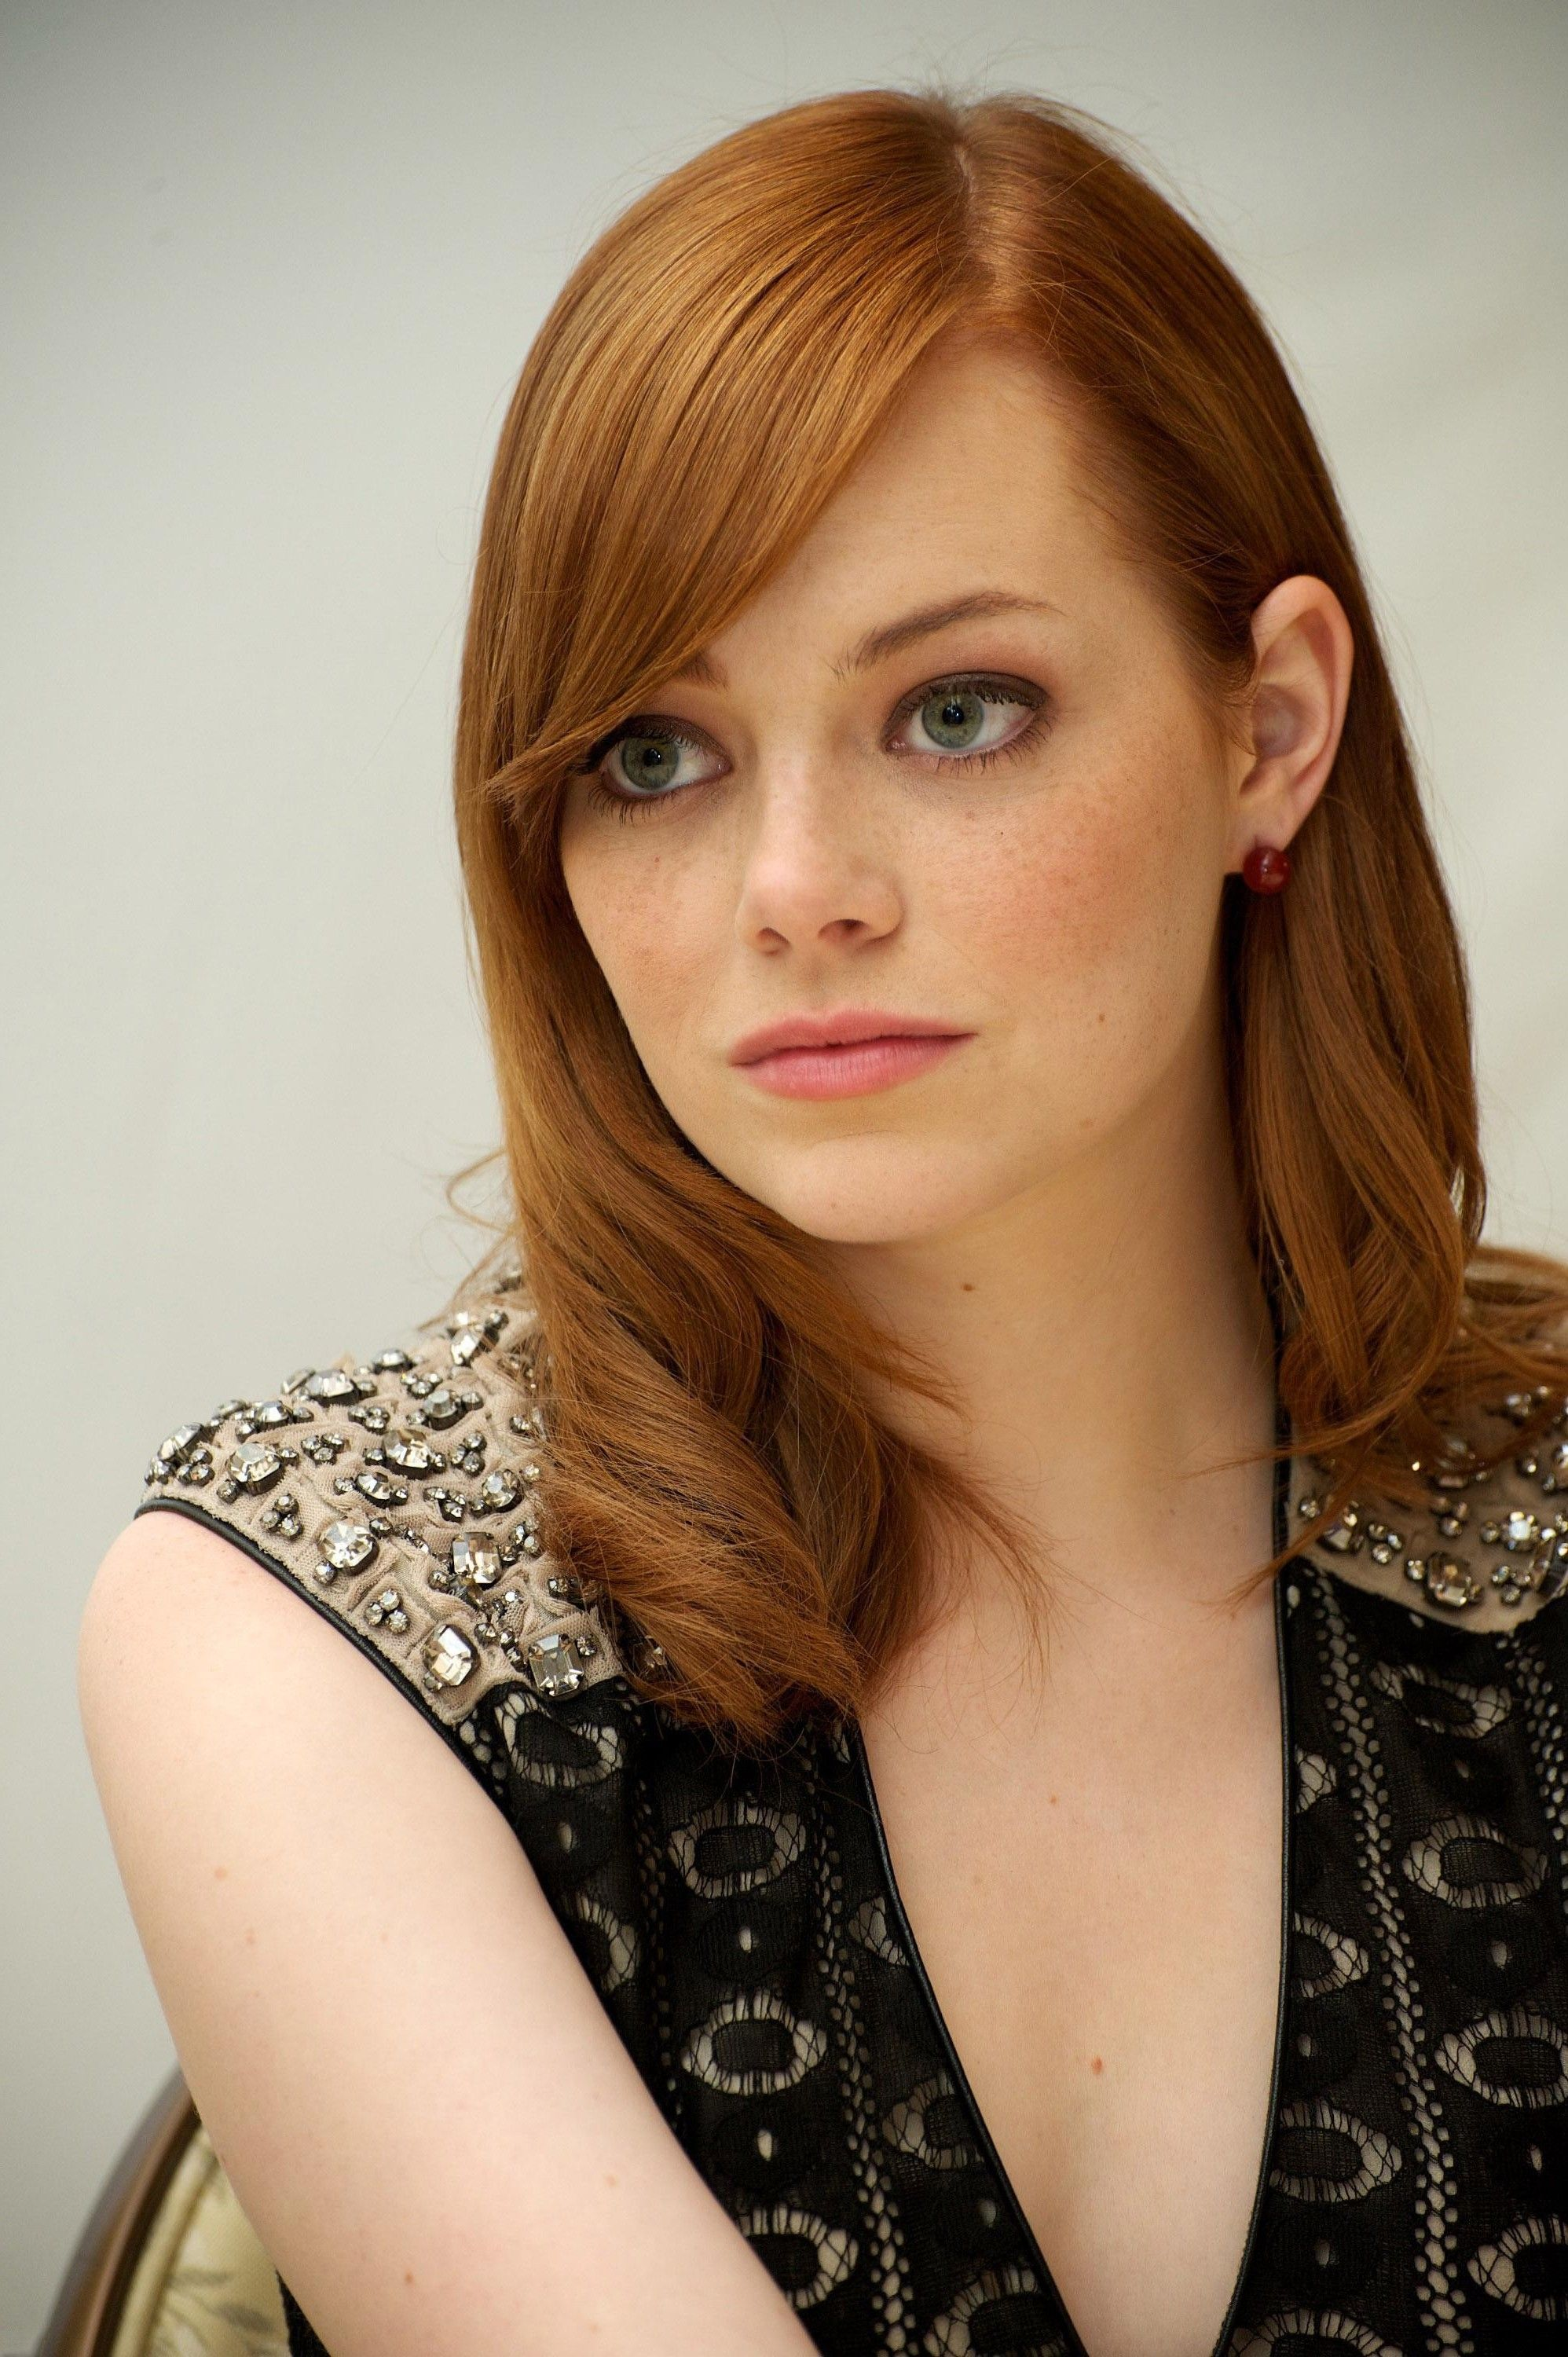 emma stone tattooemma stone audition, emma stone la la land, emma stone audition перевод, emma stone cat, emma stone ryan gosling, emma stone instagram, emma stone and andrew garfield, emma stone audition lyrics, emma stone 2016, emma stone gif, emma stone vk, emma stone 2017, emma stone – someone in the crowd, emma stone boyfriend, emma stone movies, emma stone twitter, emma stone interview, emma stone films, emma stone wiki, emma stone tattoo